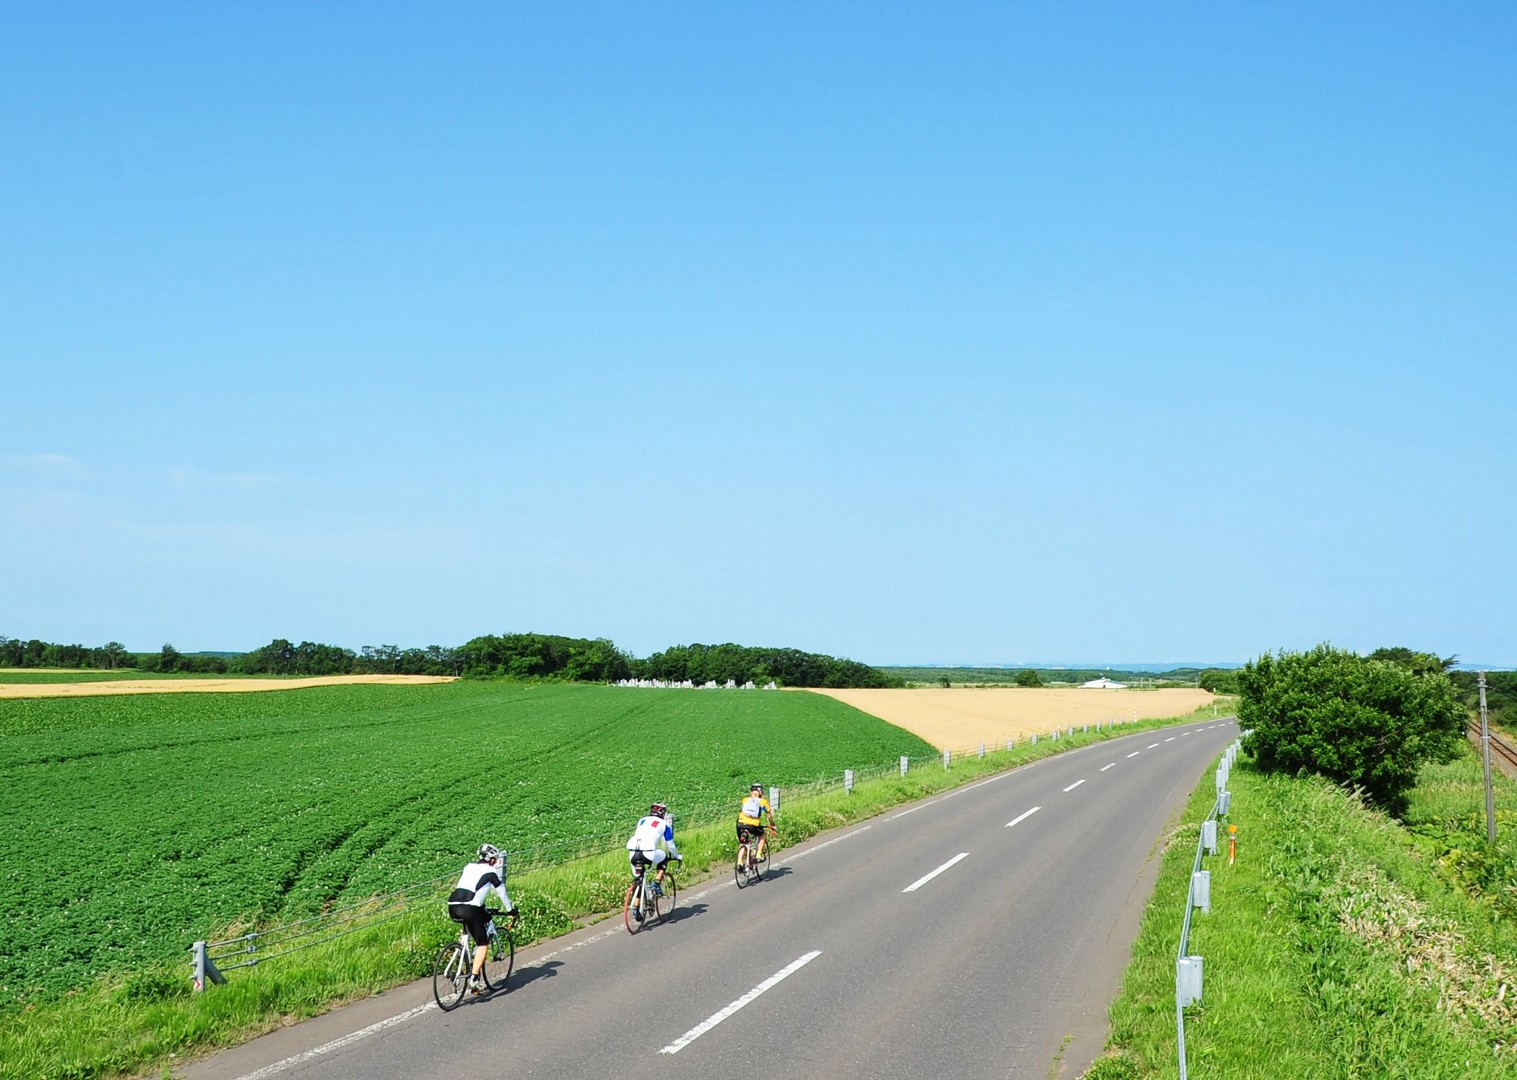 the-heart-of-hokkaido-cycling-holiday.JPG - Japan - Undiscovered Japan - The Heart of Hokkaido - Cycling Holiday - Cycling Adventures